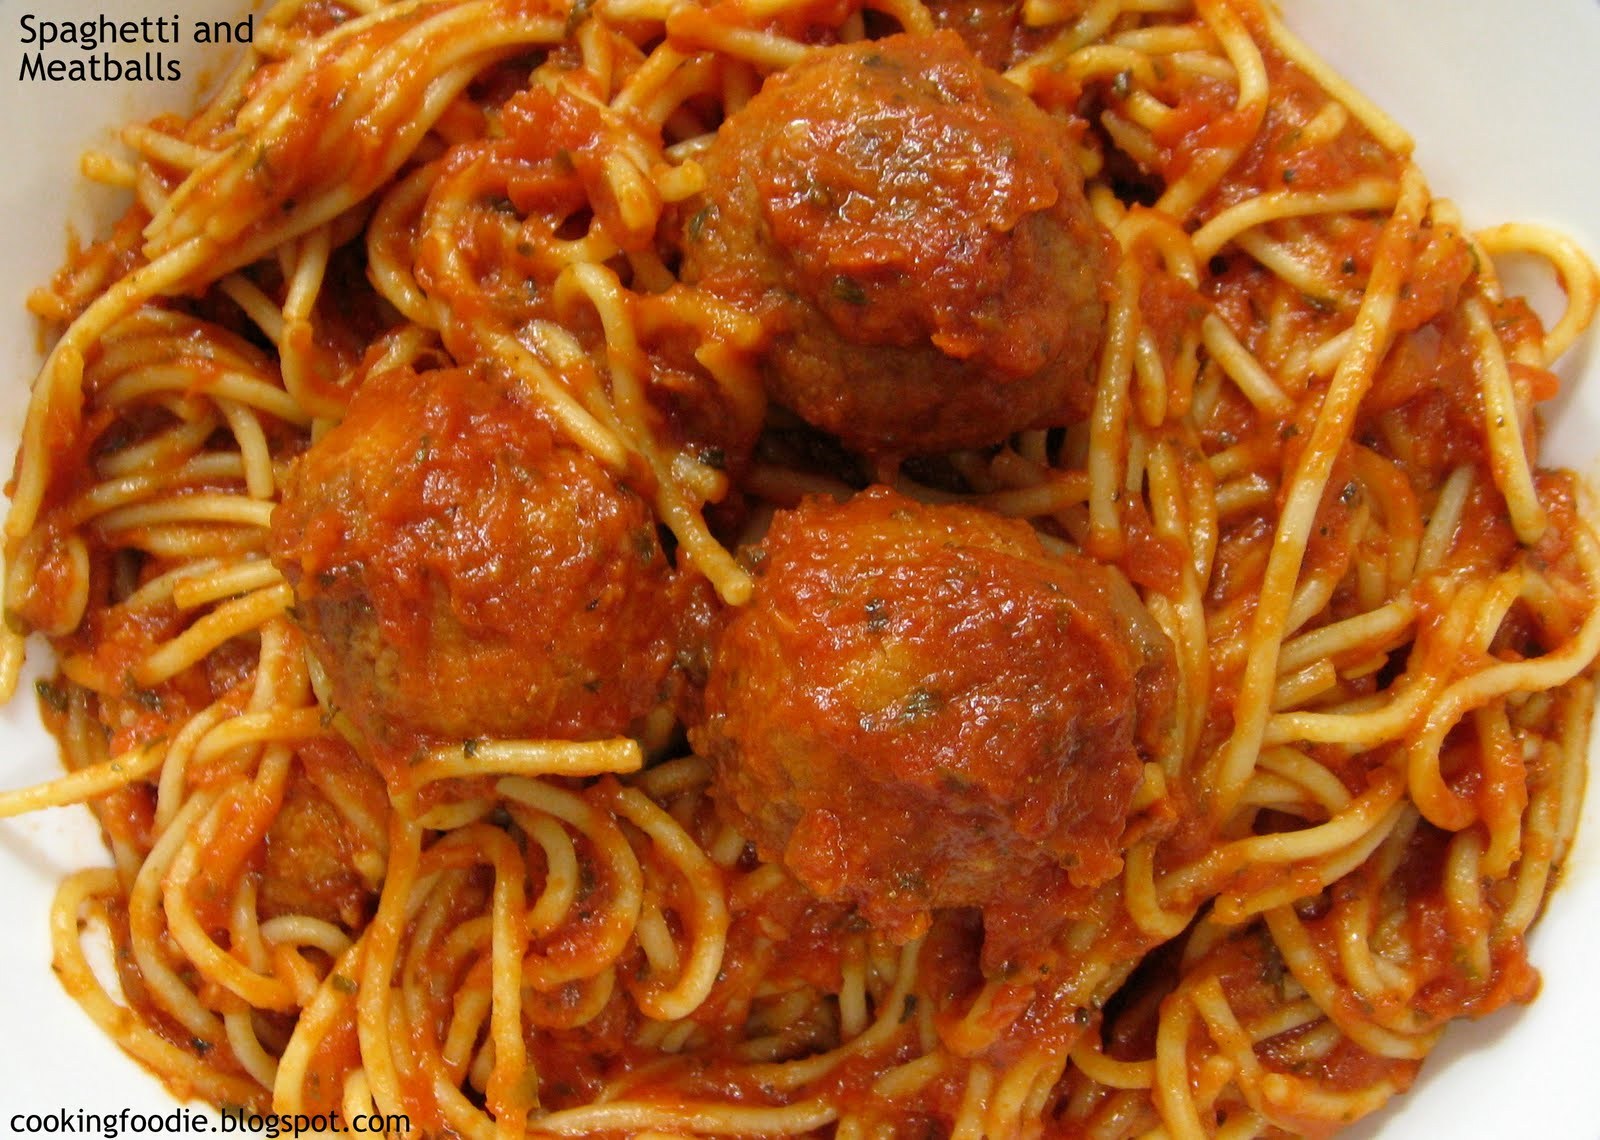 Spaghetti and Meatballs - the vegetarian version